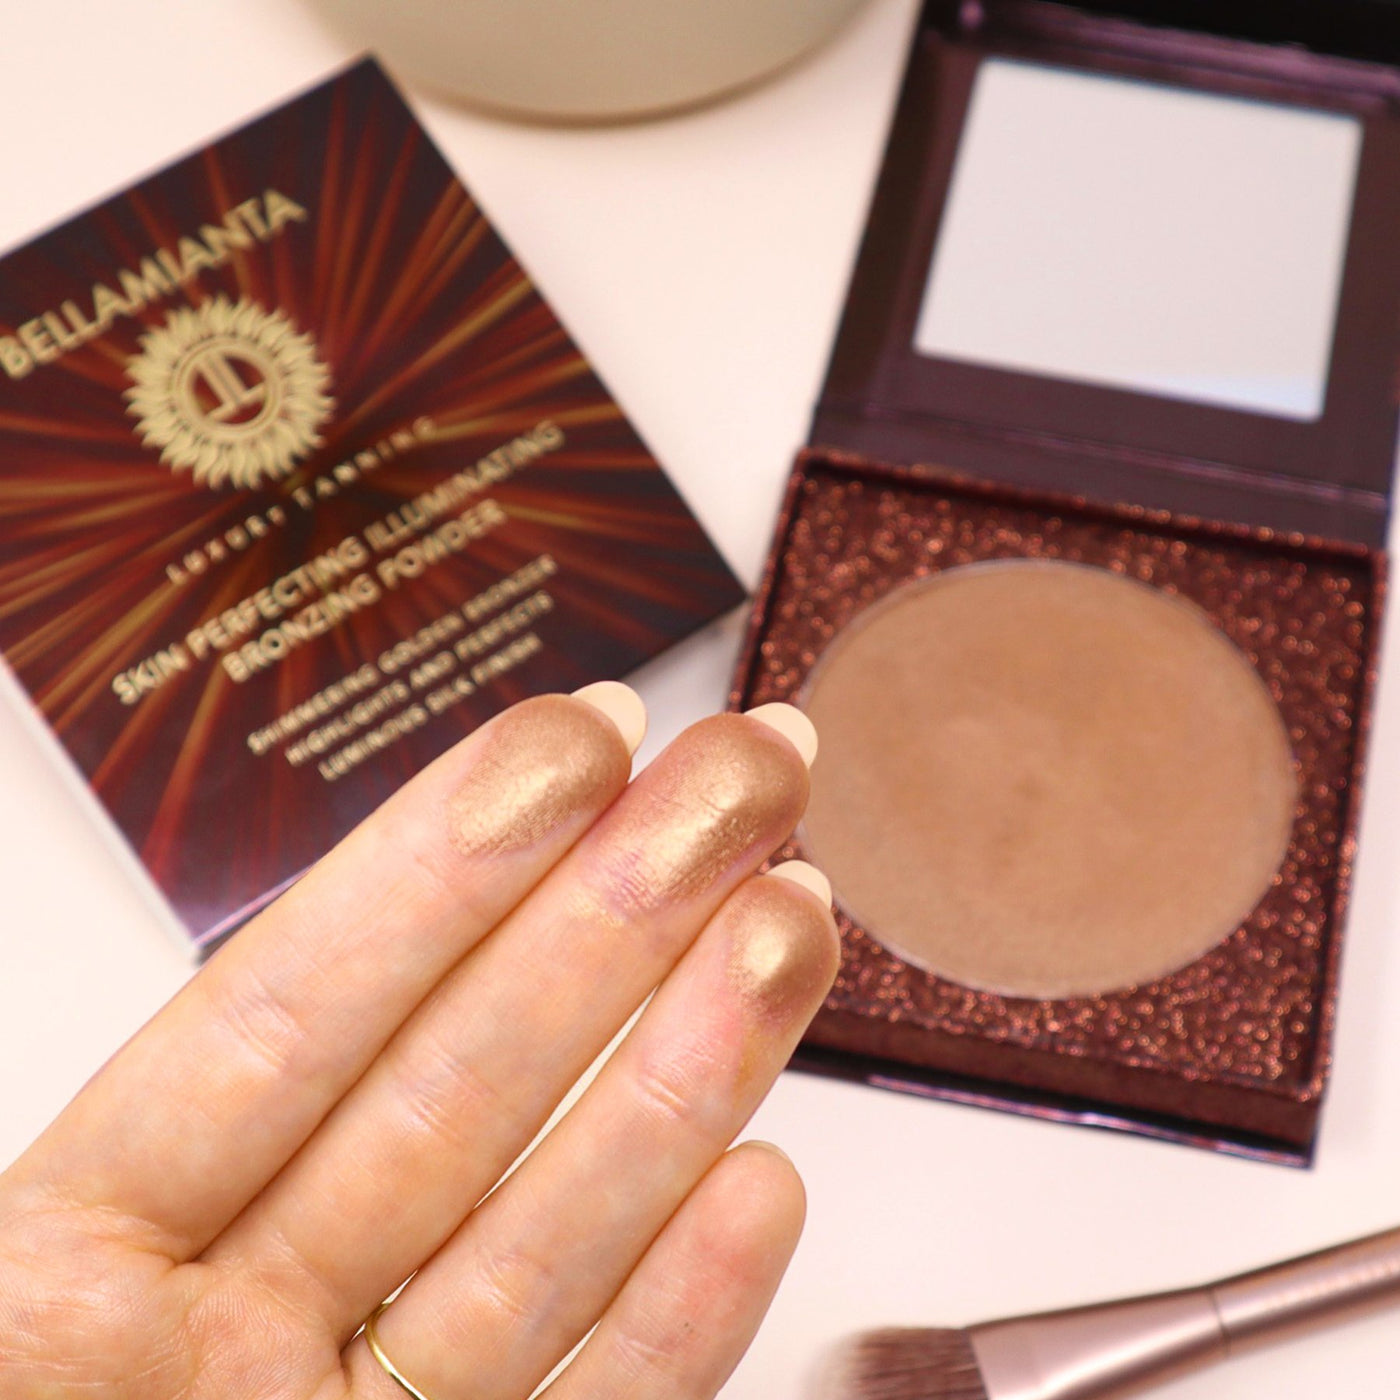 Load image into Gallery viewer, Bellamianta Skin Perfecting Illuminating Bronzing Powder